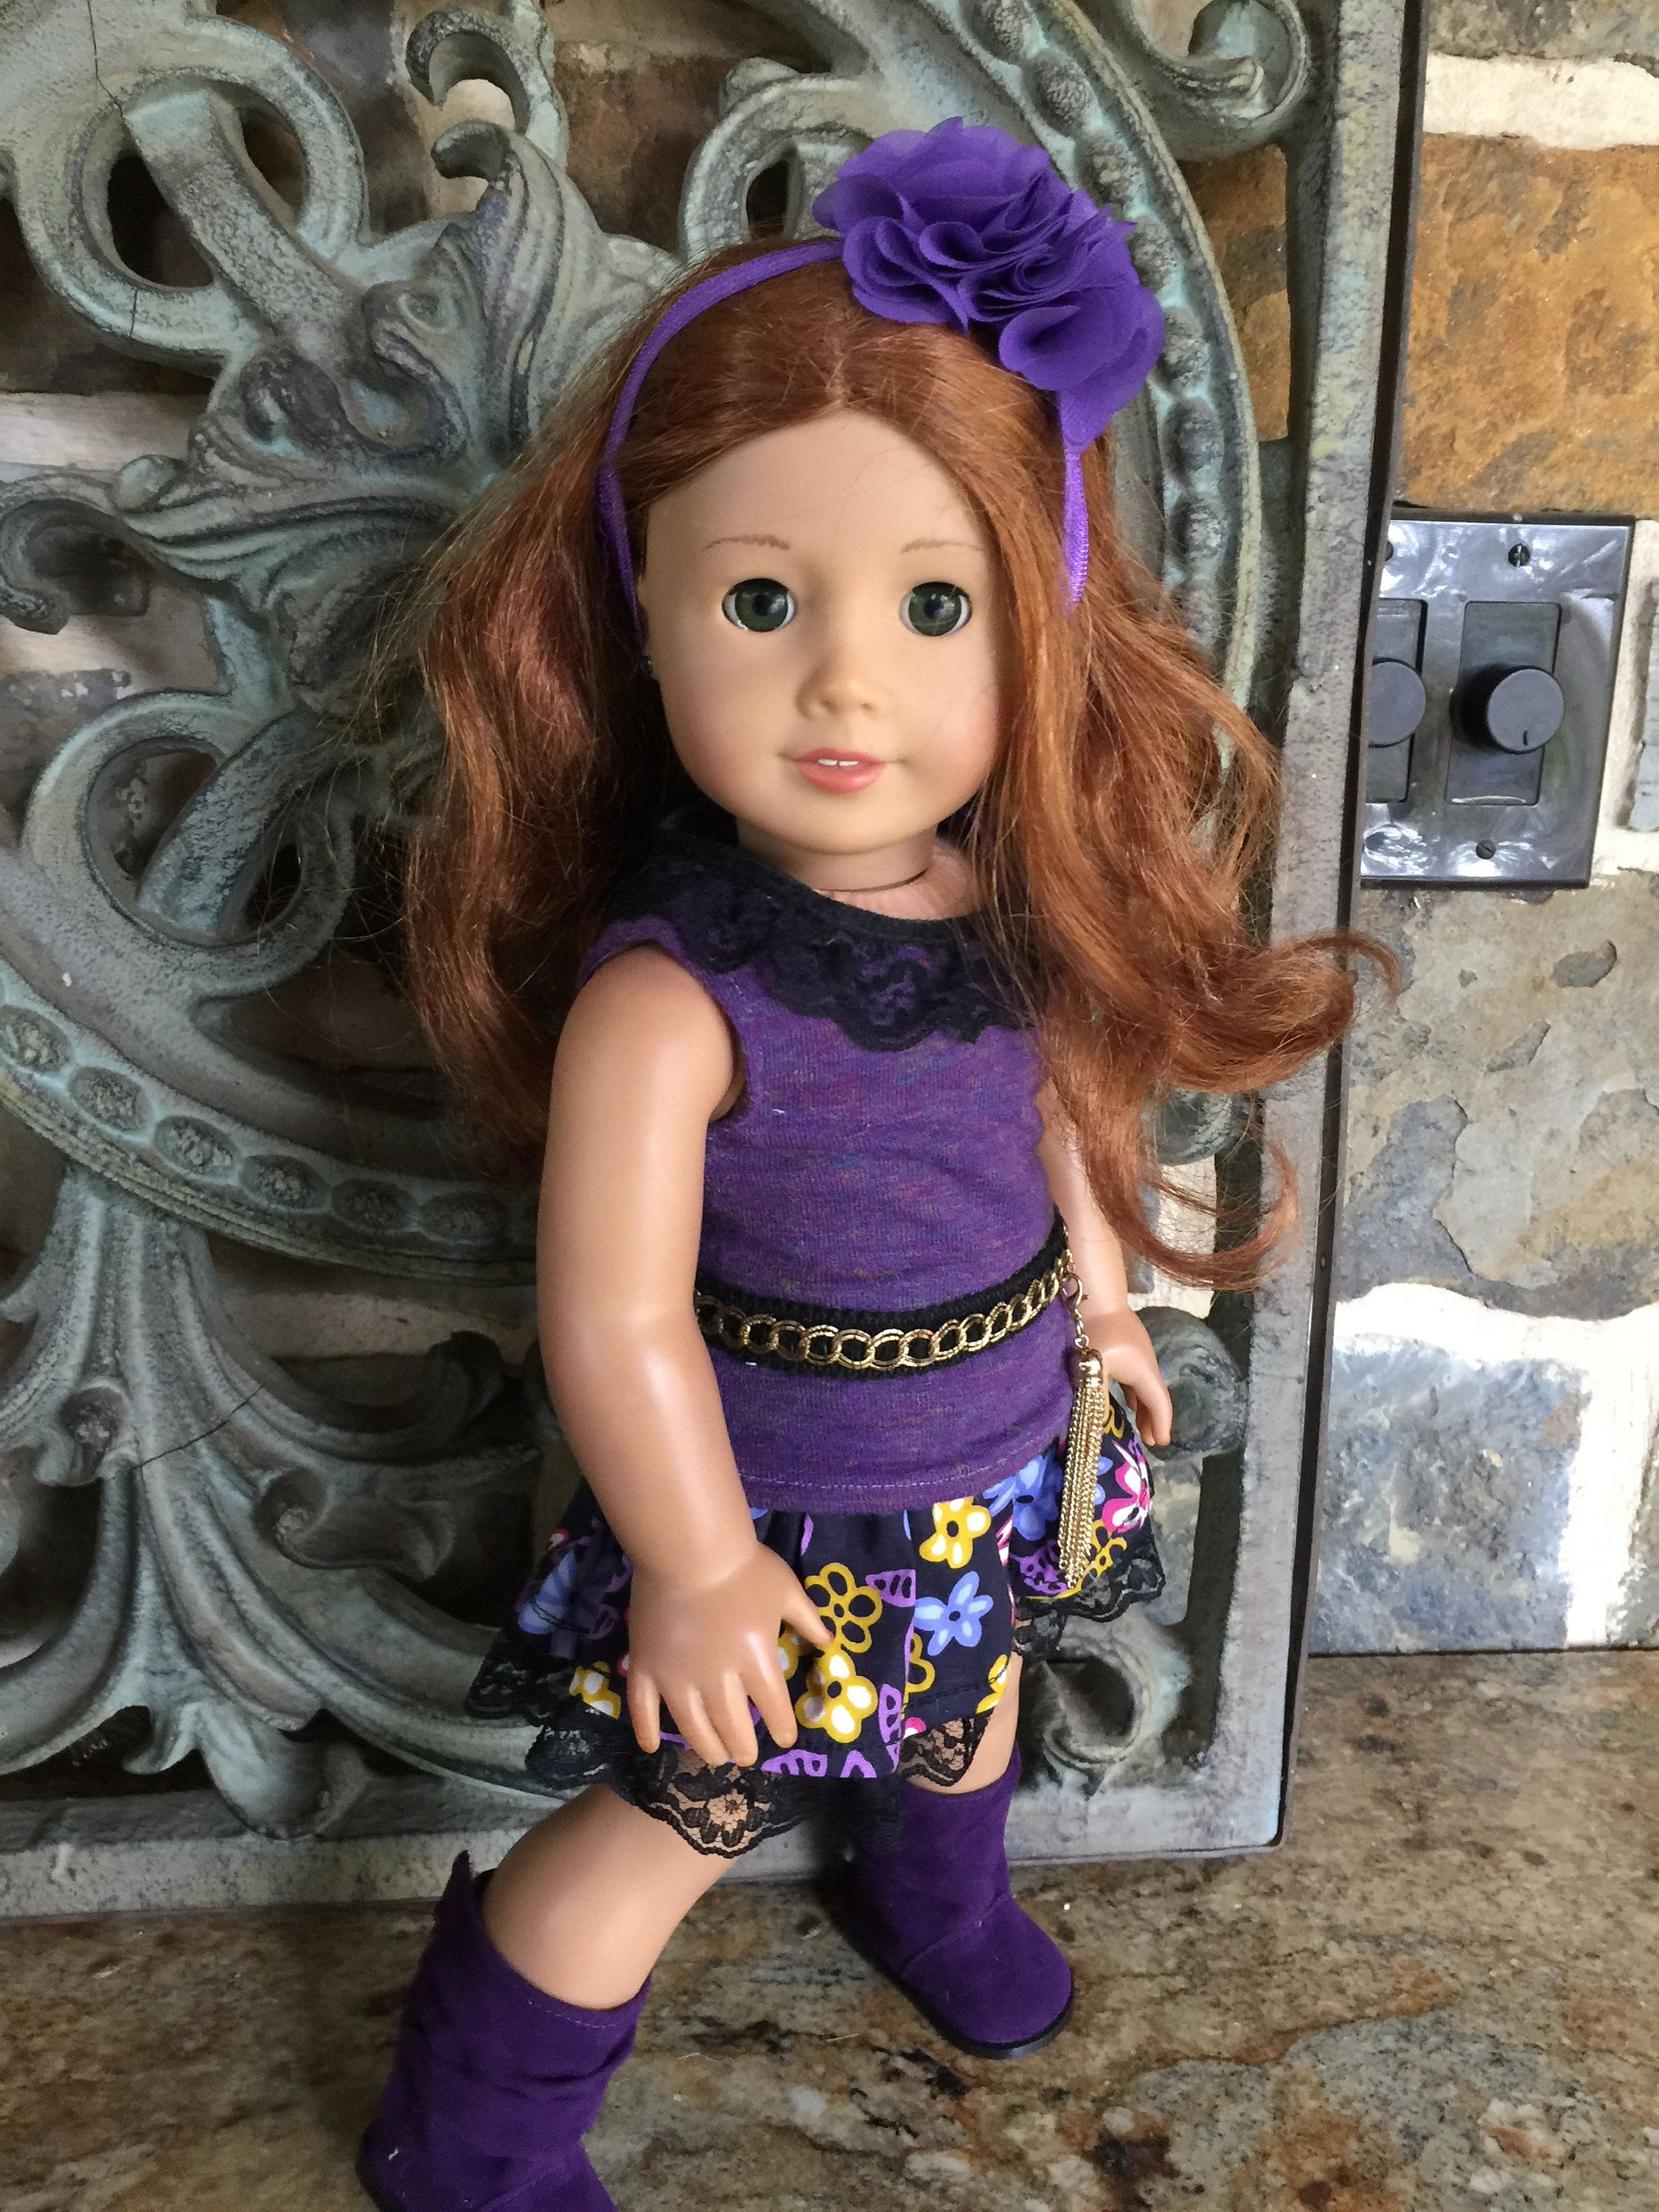 18 inch doll clothes made to fit dolls like the American Girl Doll-Purple top-floral skirt-headband-boots #18inchdollsandclothes